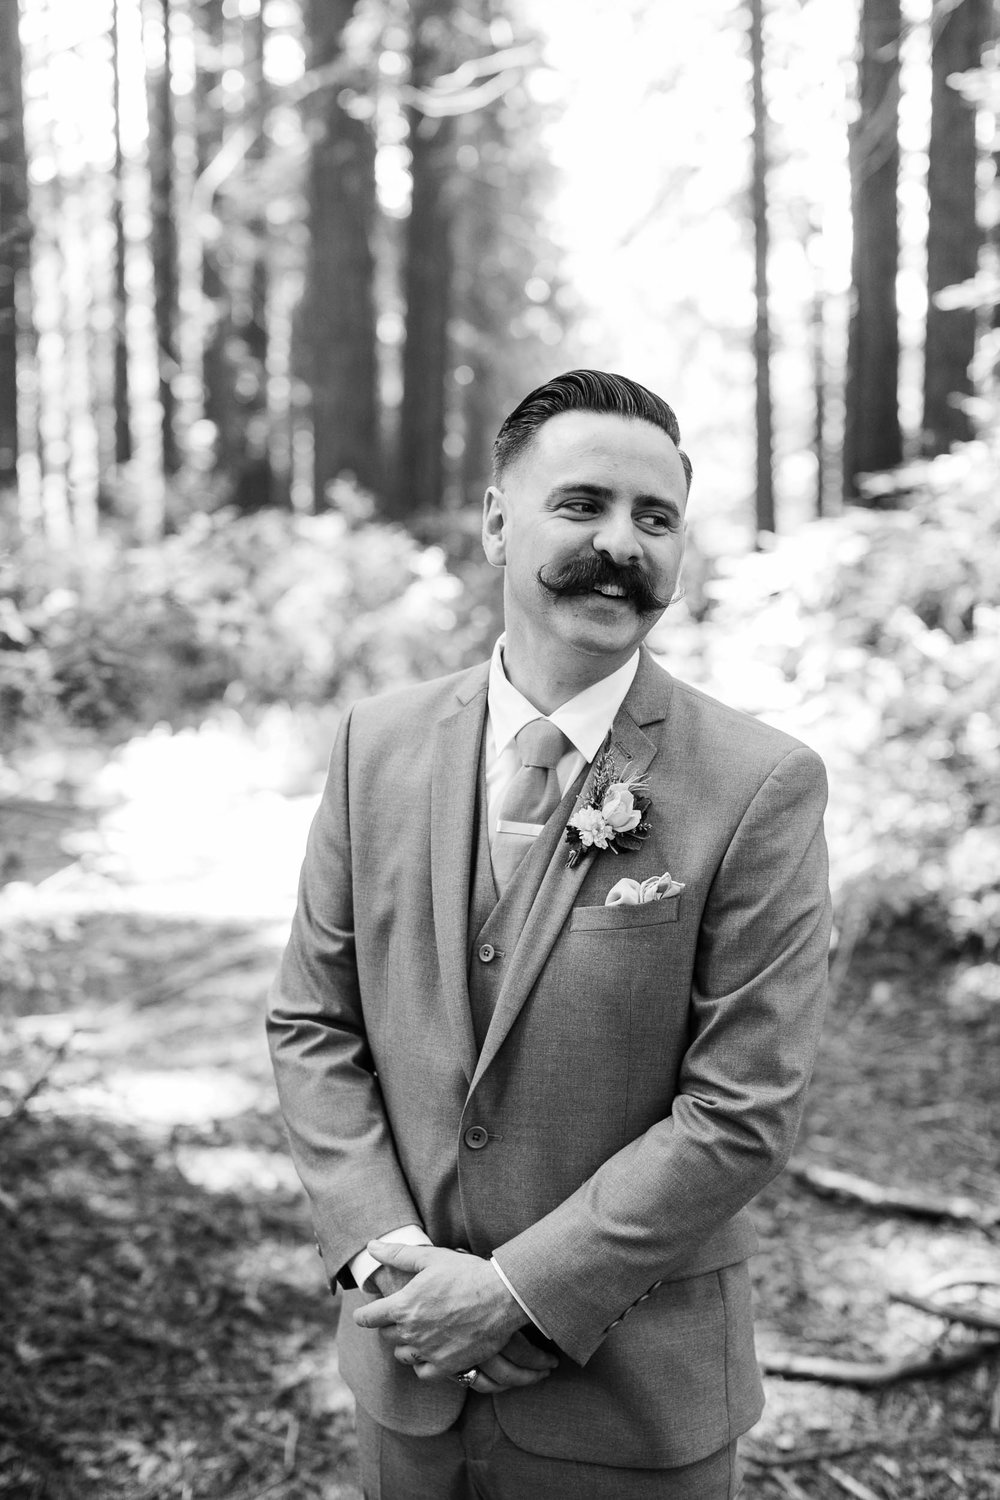 050418_J+S_Redwoods Elopement_Buena Lane Photography_0296.jpg